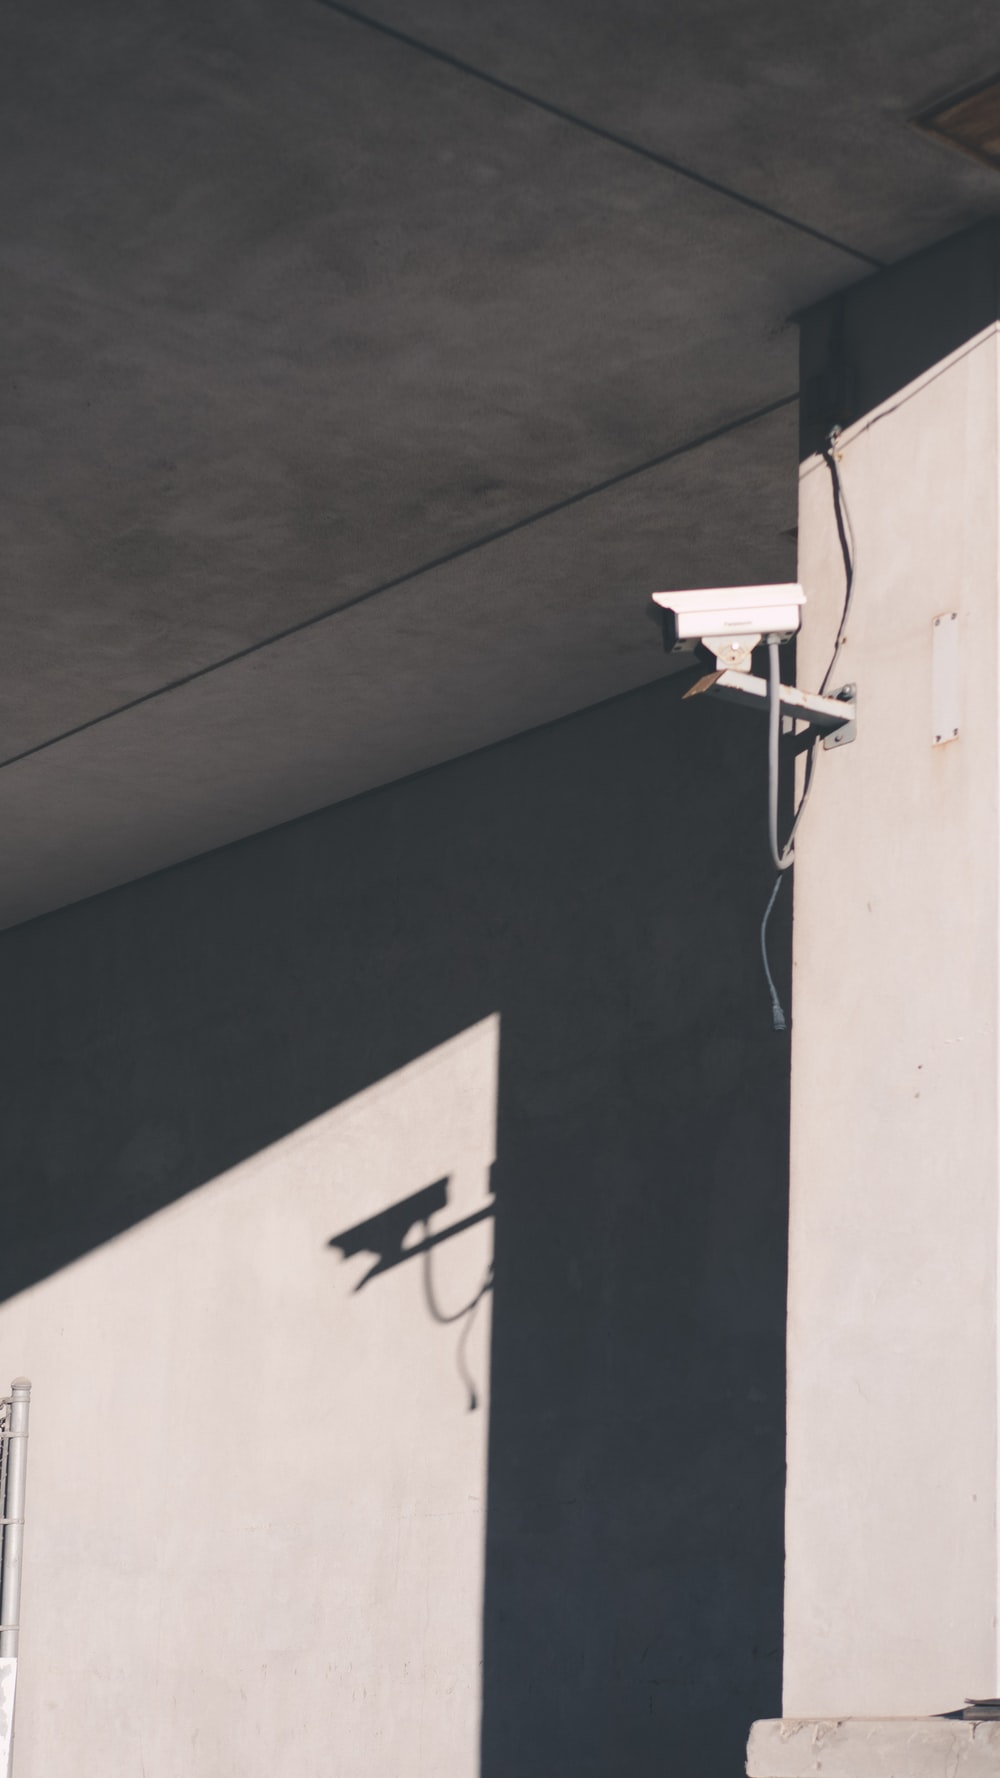 white box security camera on wall